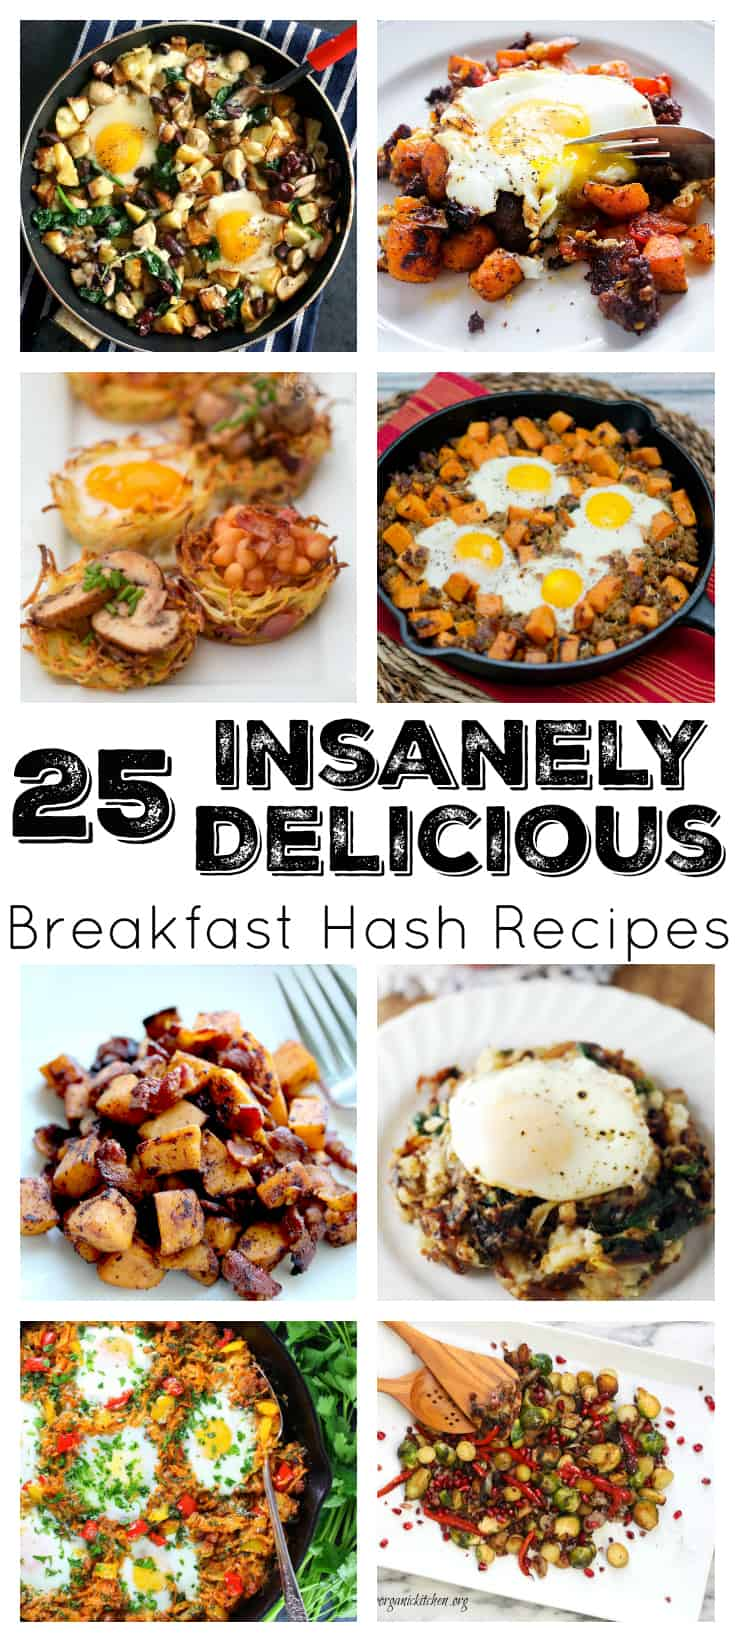 Take your pick from any one of these 25 insanely delicious breakfast hash recipes - you will not be disappointed! They all are great for breakfast, brunch, or even dinner! | www.DeliciousLittleBites.com